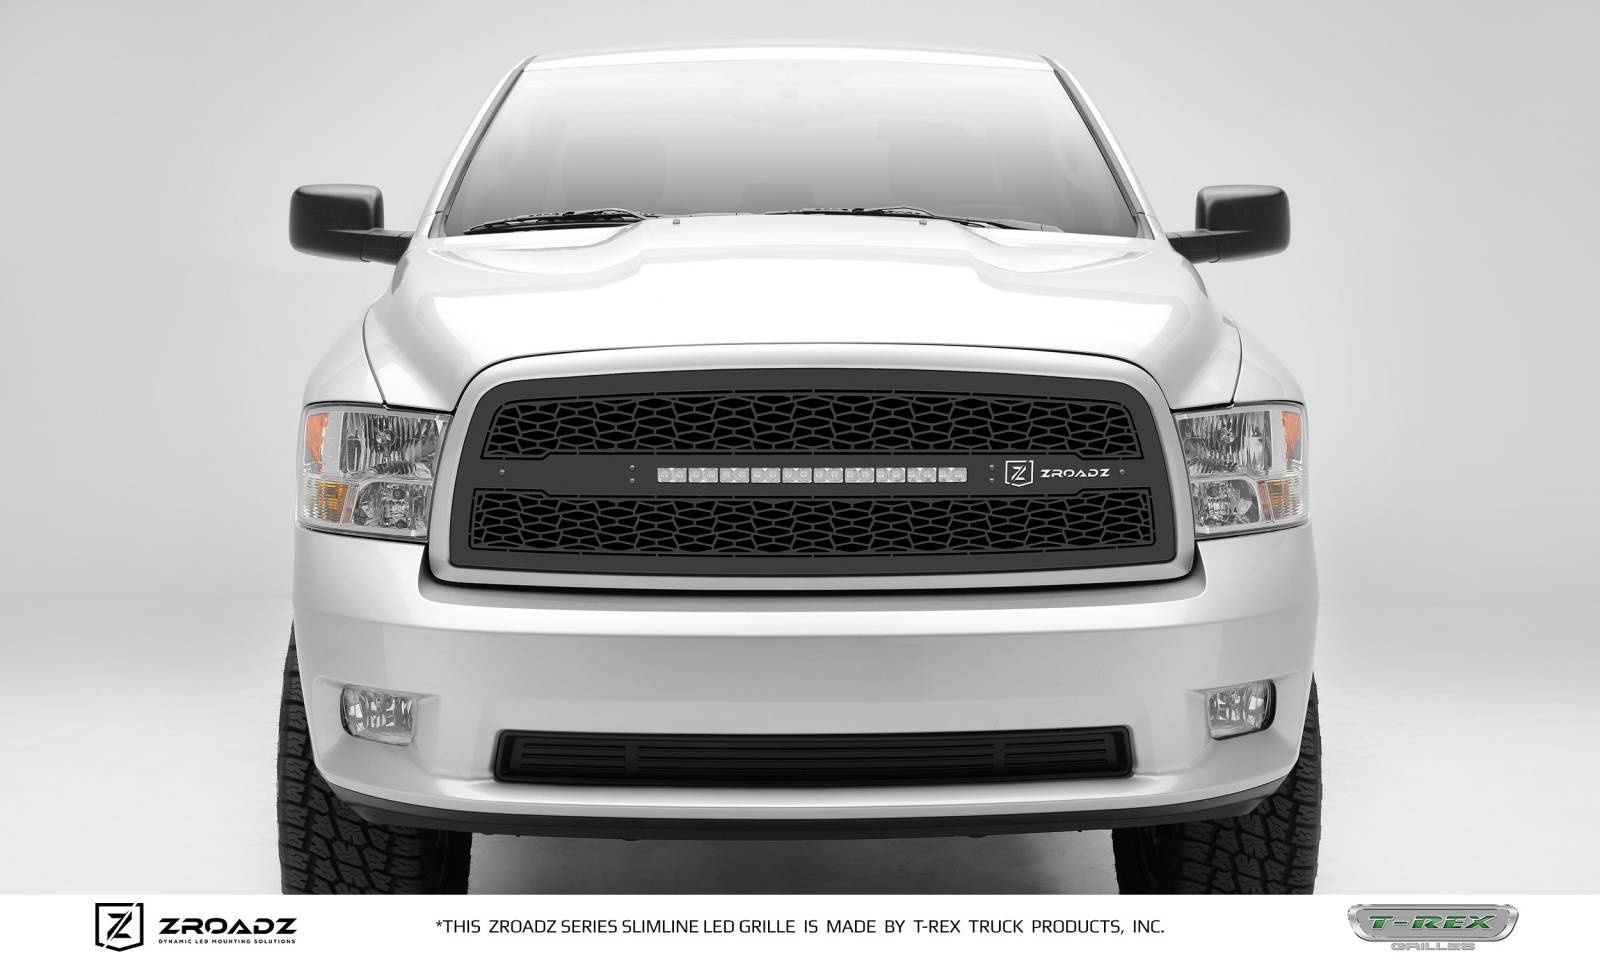 Dodge ram 1500 zroadz series main insert grille w one 20 inch dodge ram 1500 zroadz series main insert grille w one 20 inch slim line single row led light bar includes universal wiring harness part z314571 aloadofball Image collections